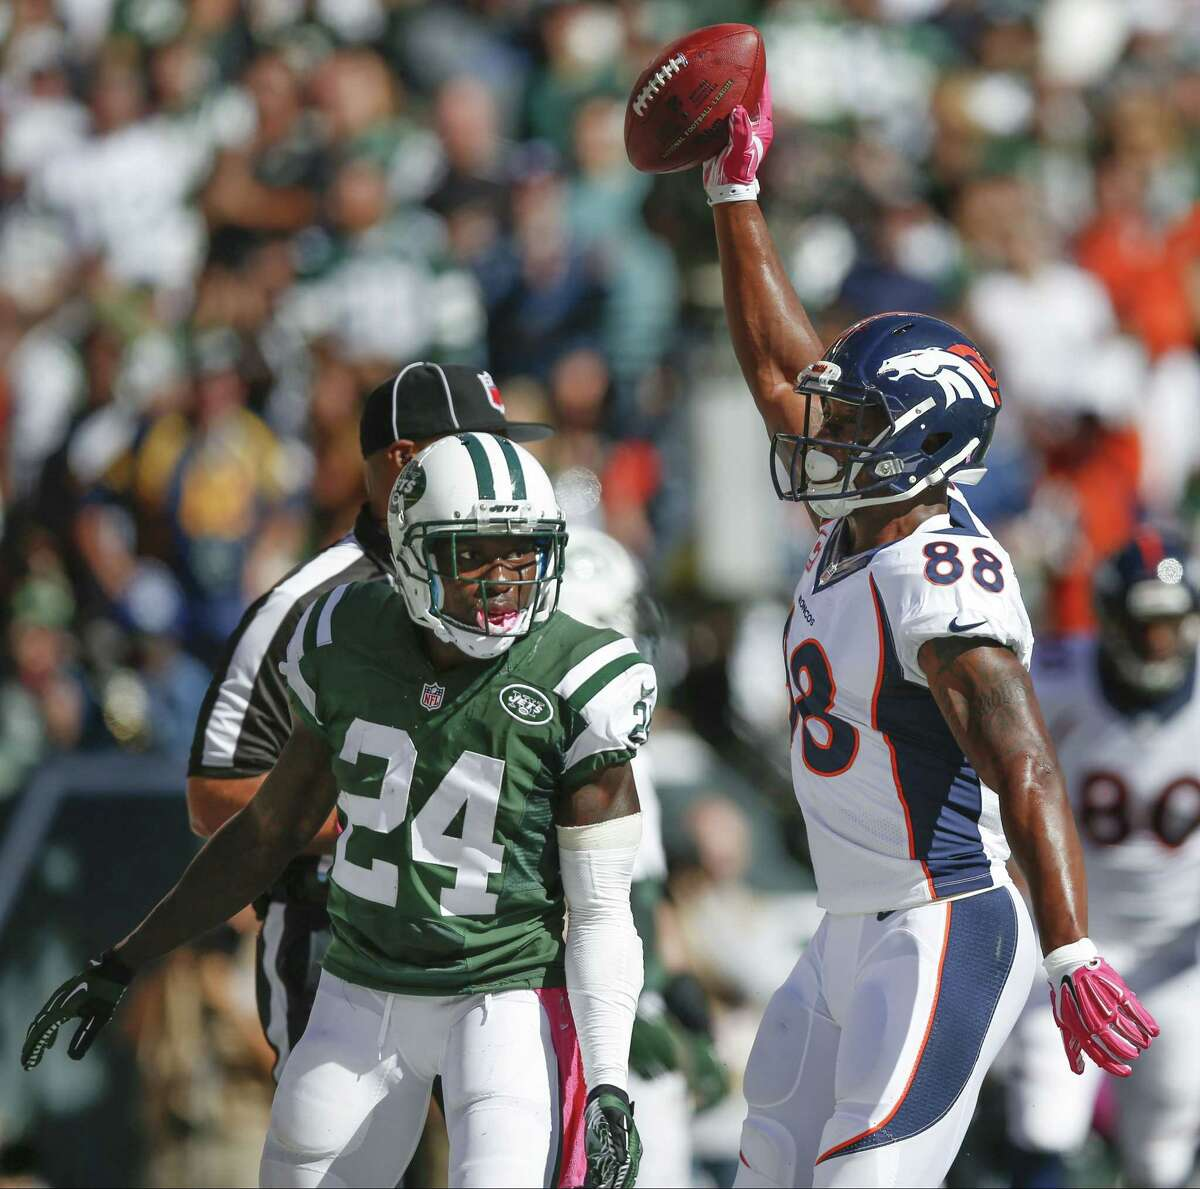 Denver Broncos receiver Demaryius Thomas (88) reacts after catching a touchdown pass against New York Jets defensive back Phillip Adams (24) in the second quarter Sunday in East Rutherford, N.J.